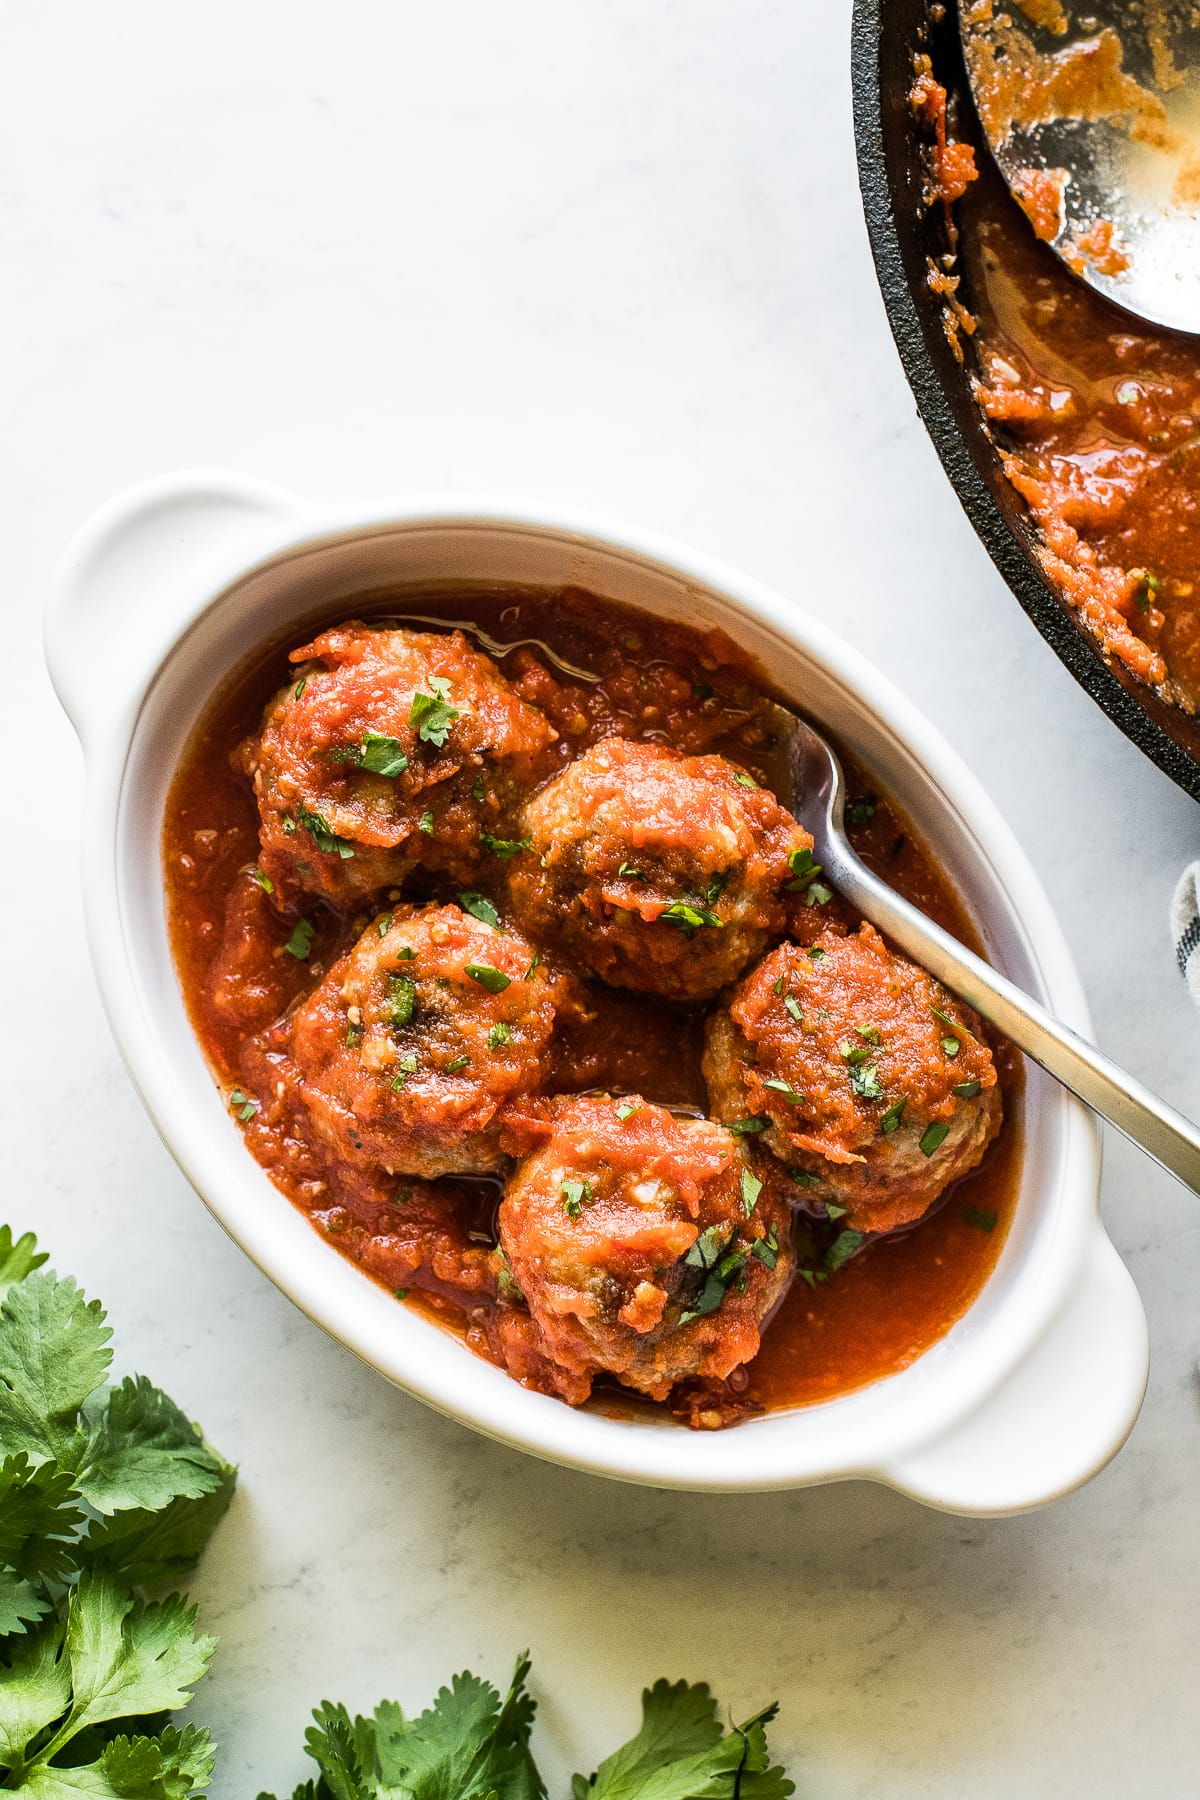 Mexican meatballs in a bowl with a fork.